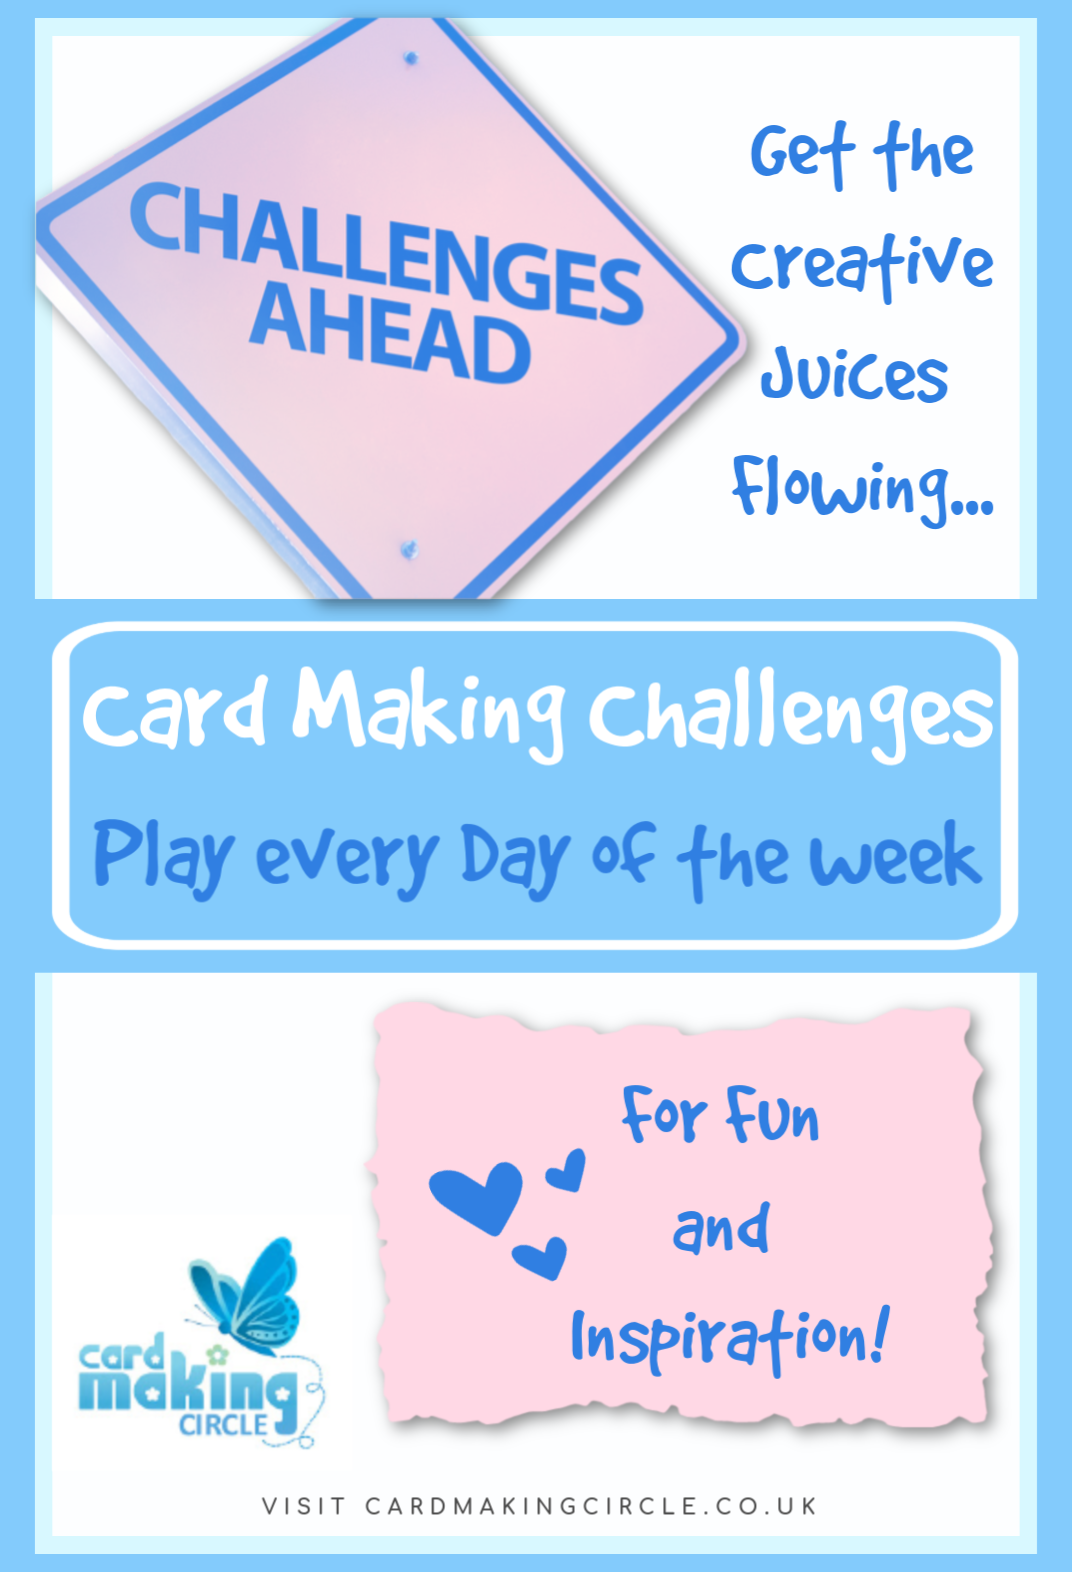 Card Making Challenges to get the creative juices flowing.  Play every day of the week for fun and inspiration.